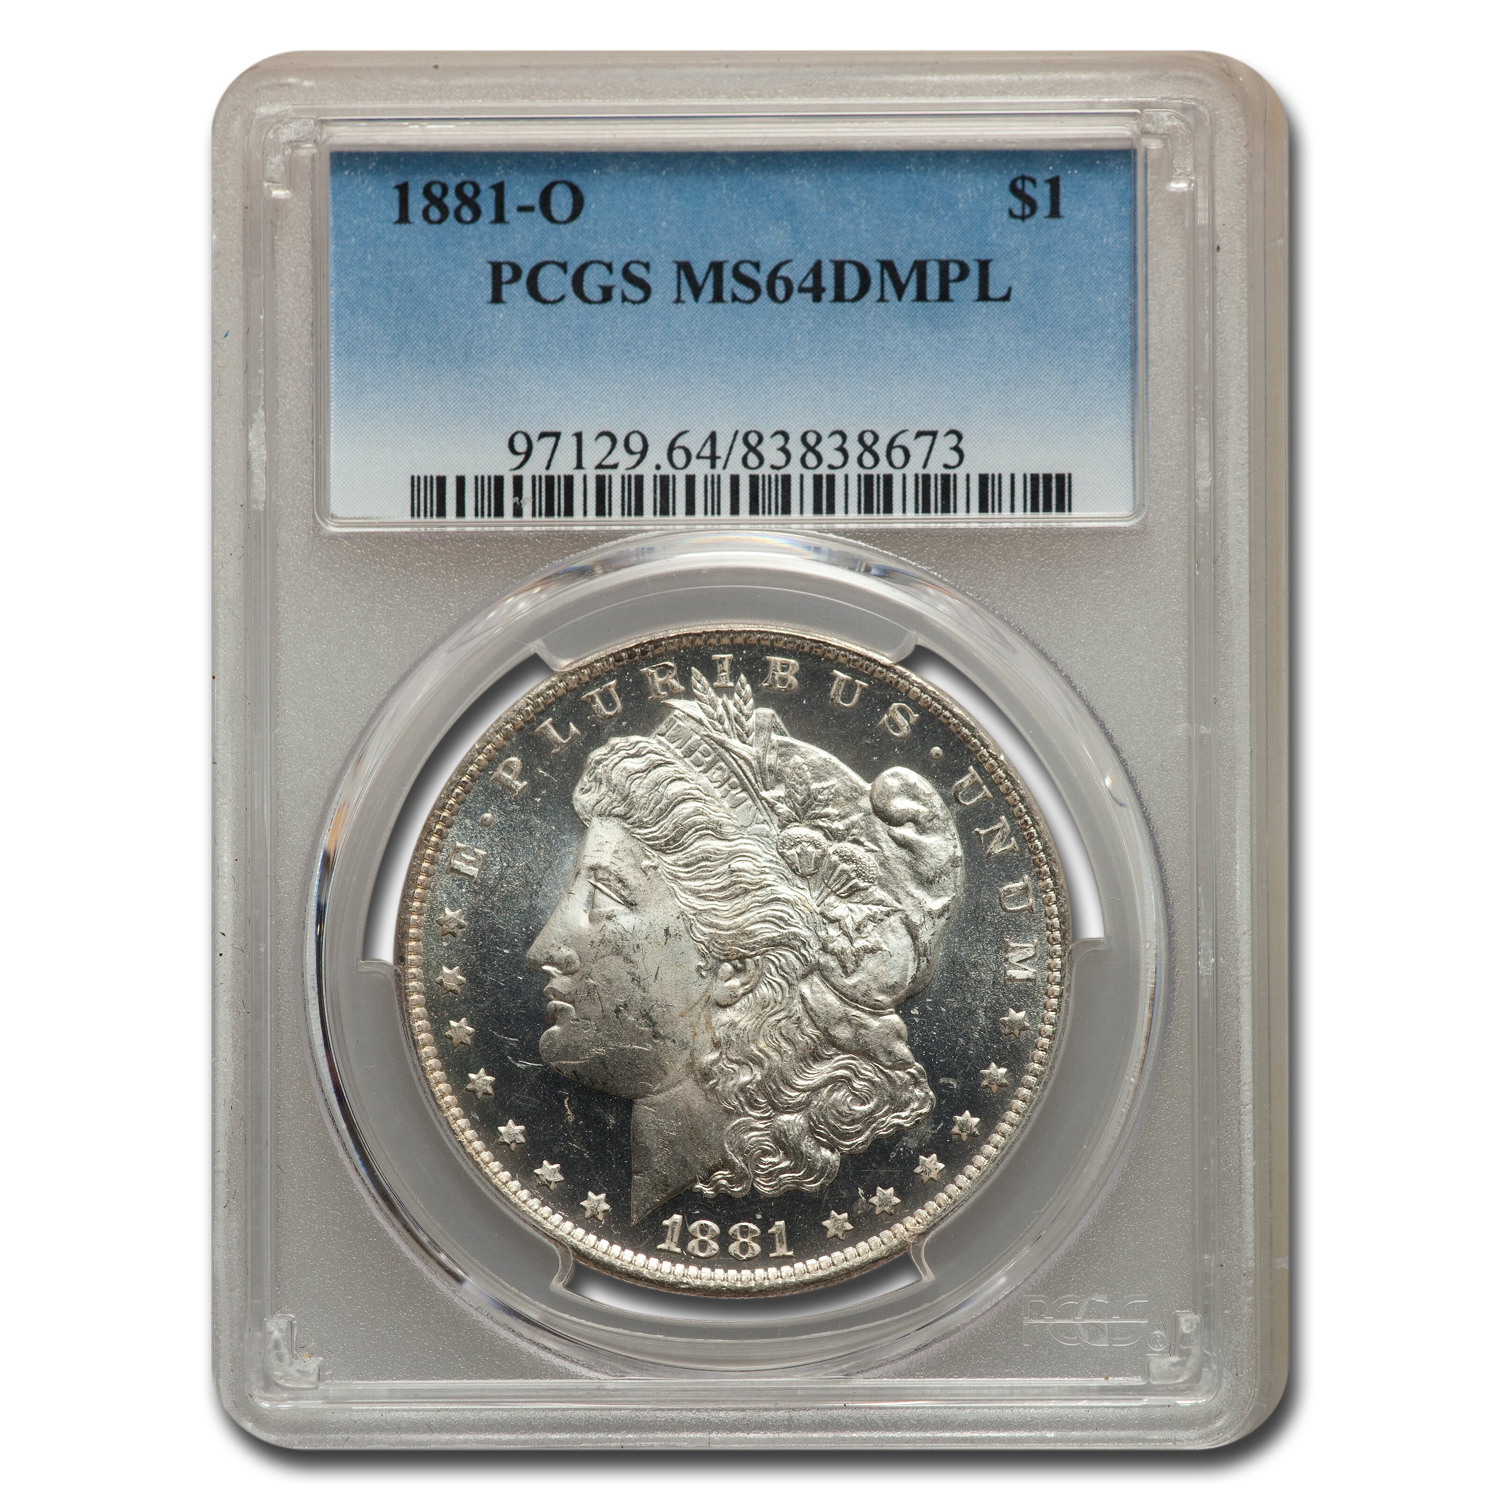 1881-O Morgan Dollar MS-64 DMPL PCGS